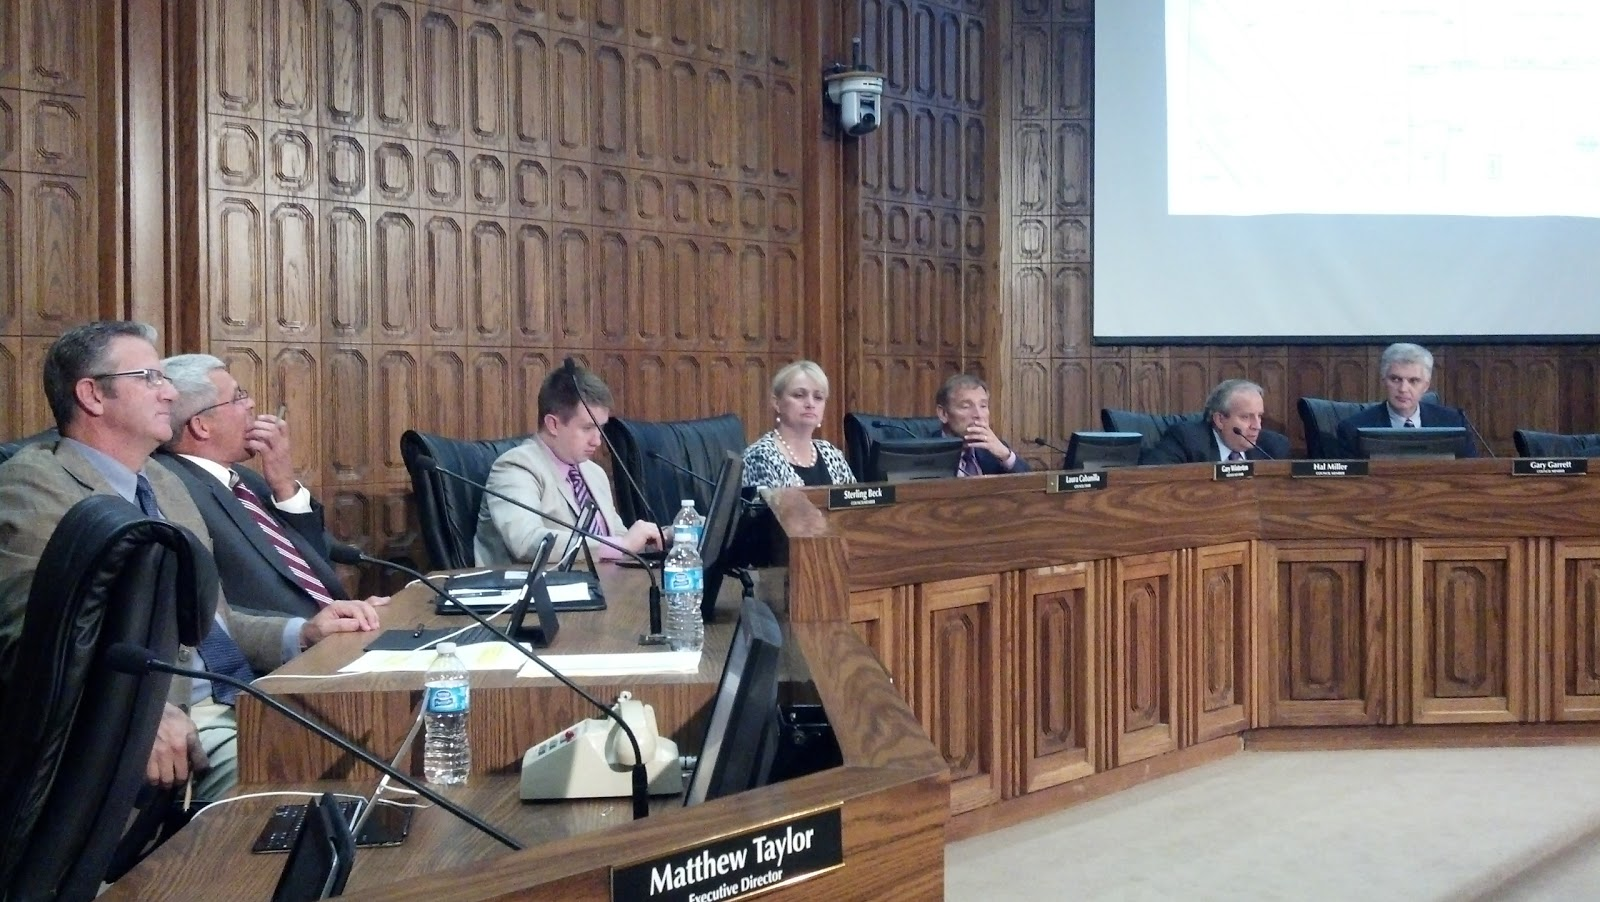 Provo City Council: Council Meeting Schedule Changes